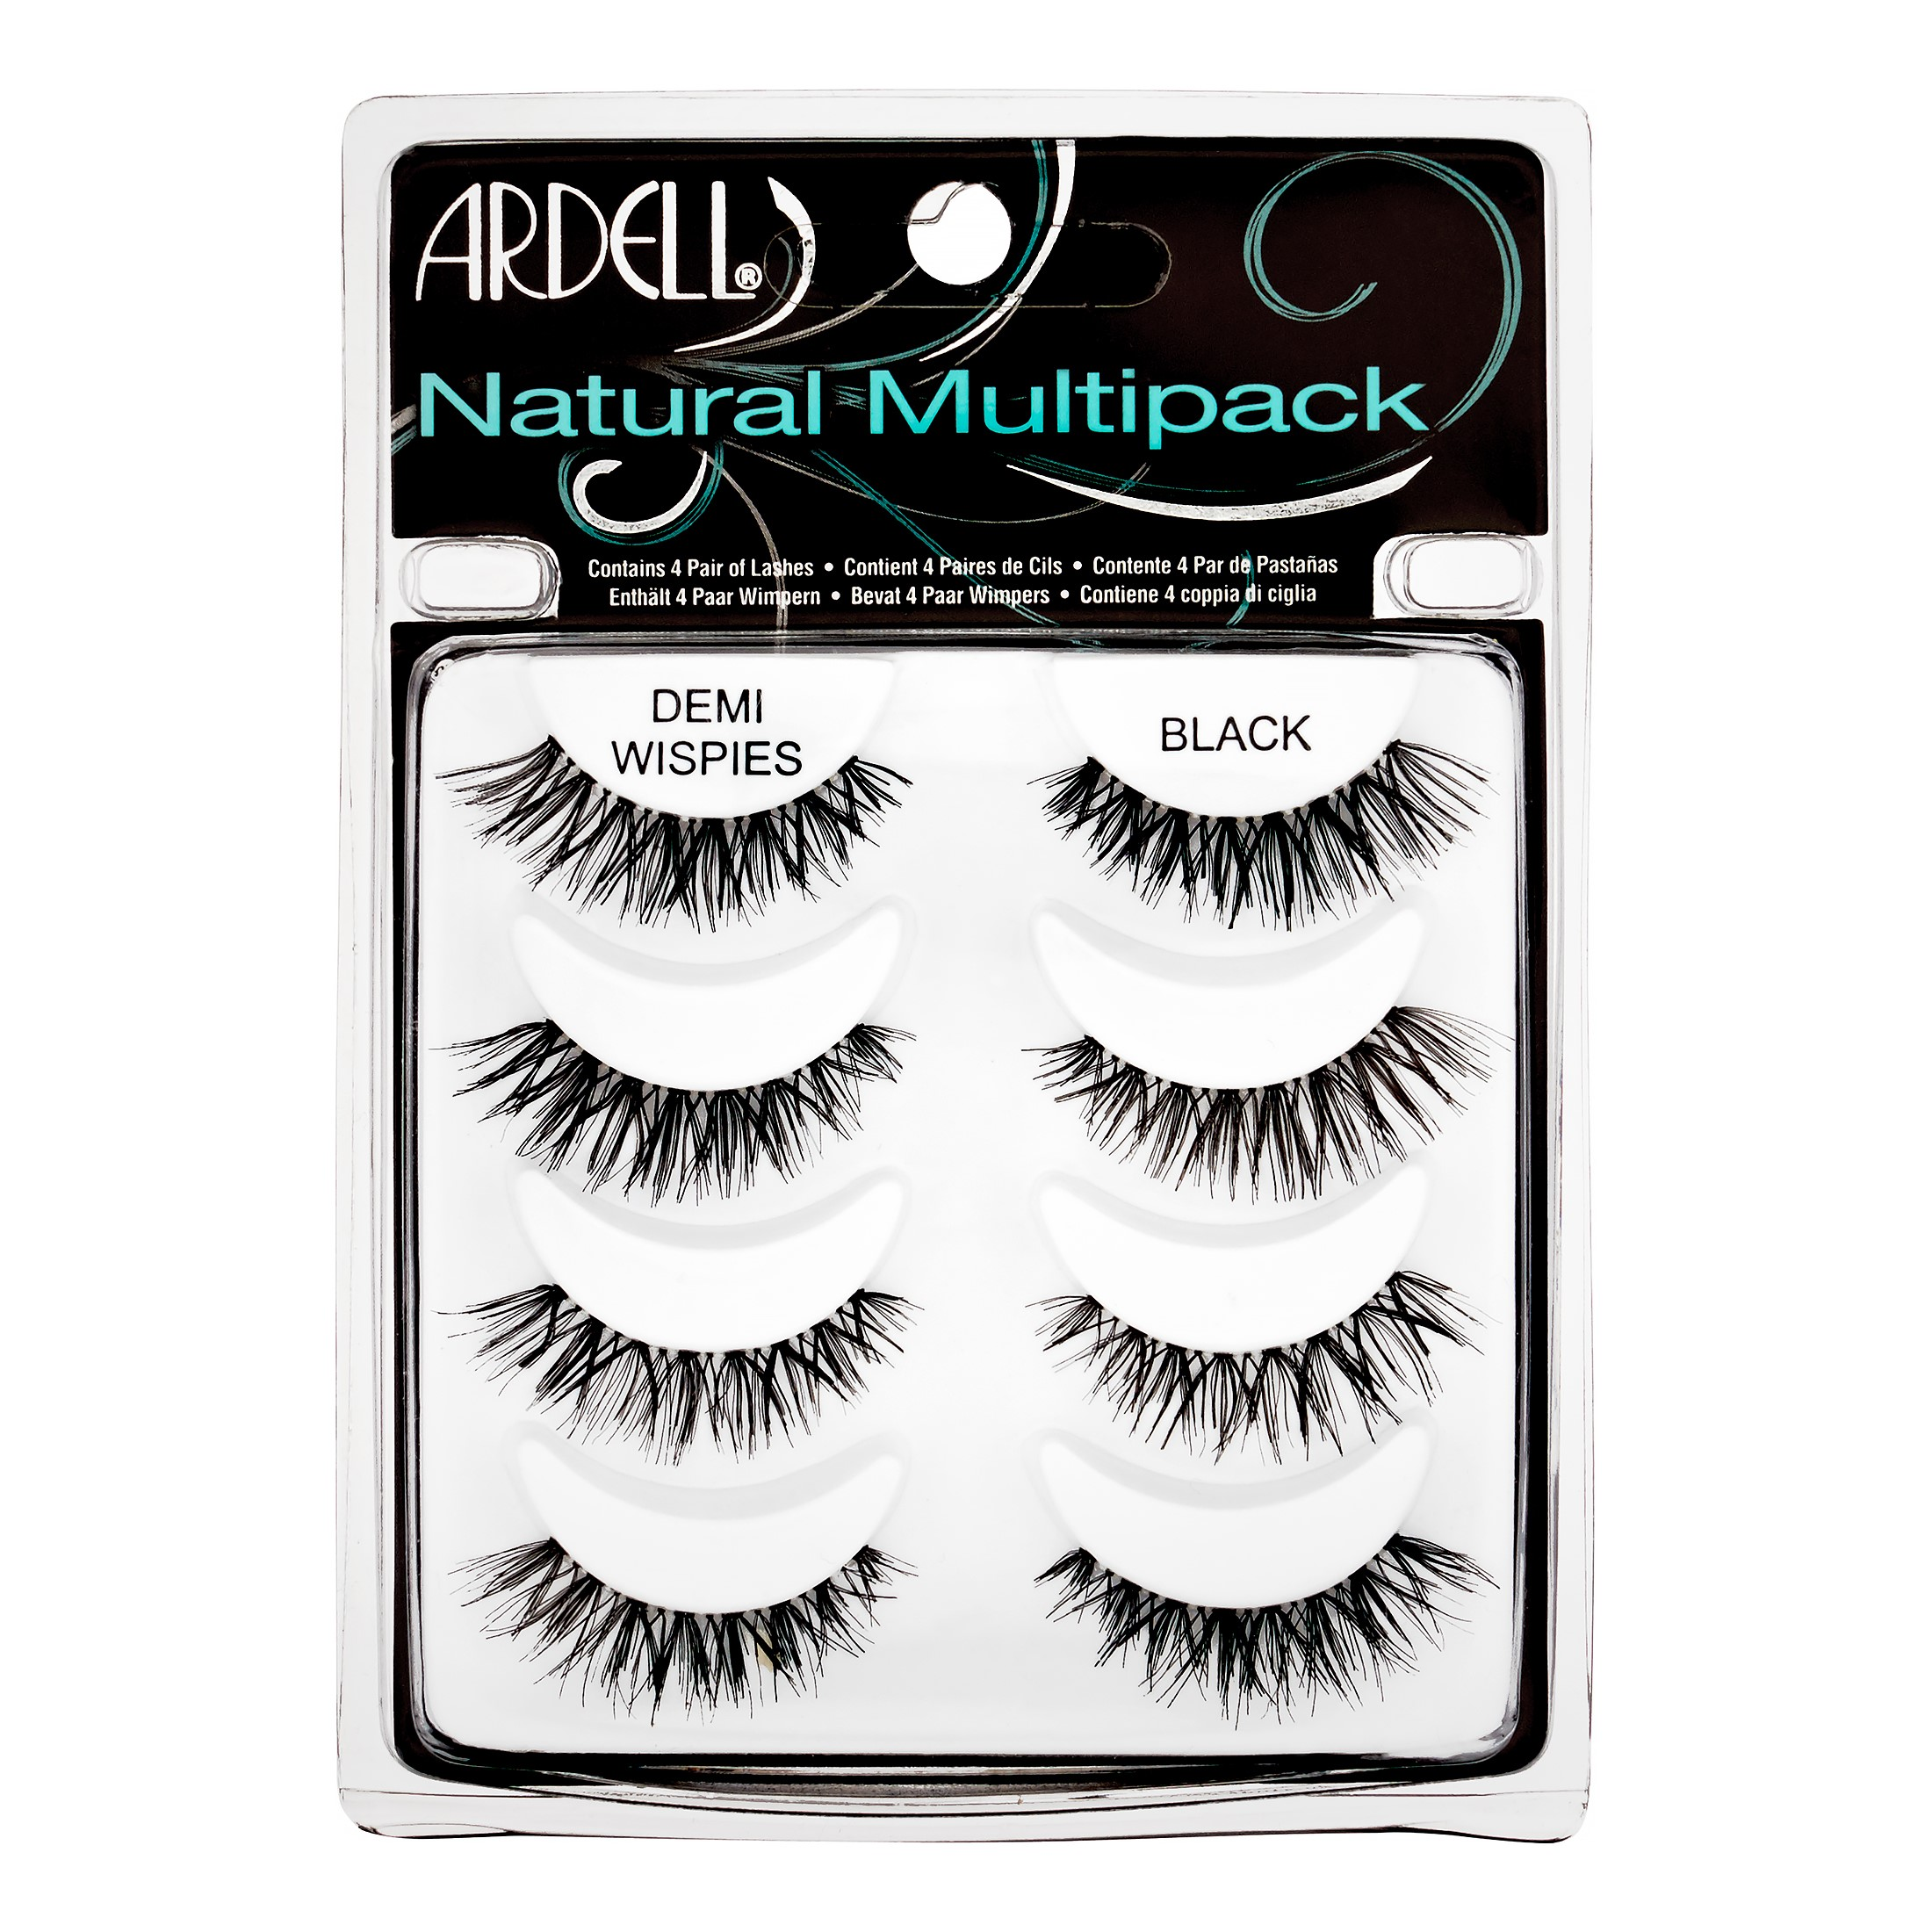 Ardell Natual Multipack, Demi Wispies